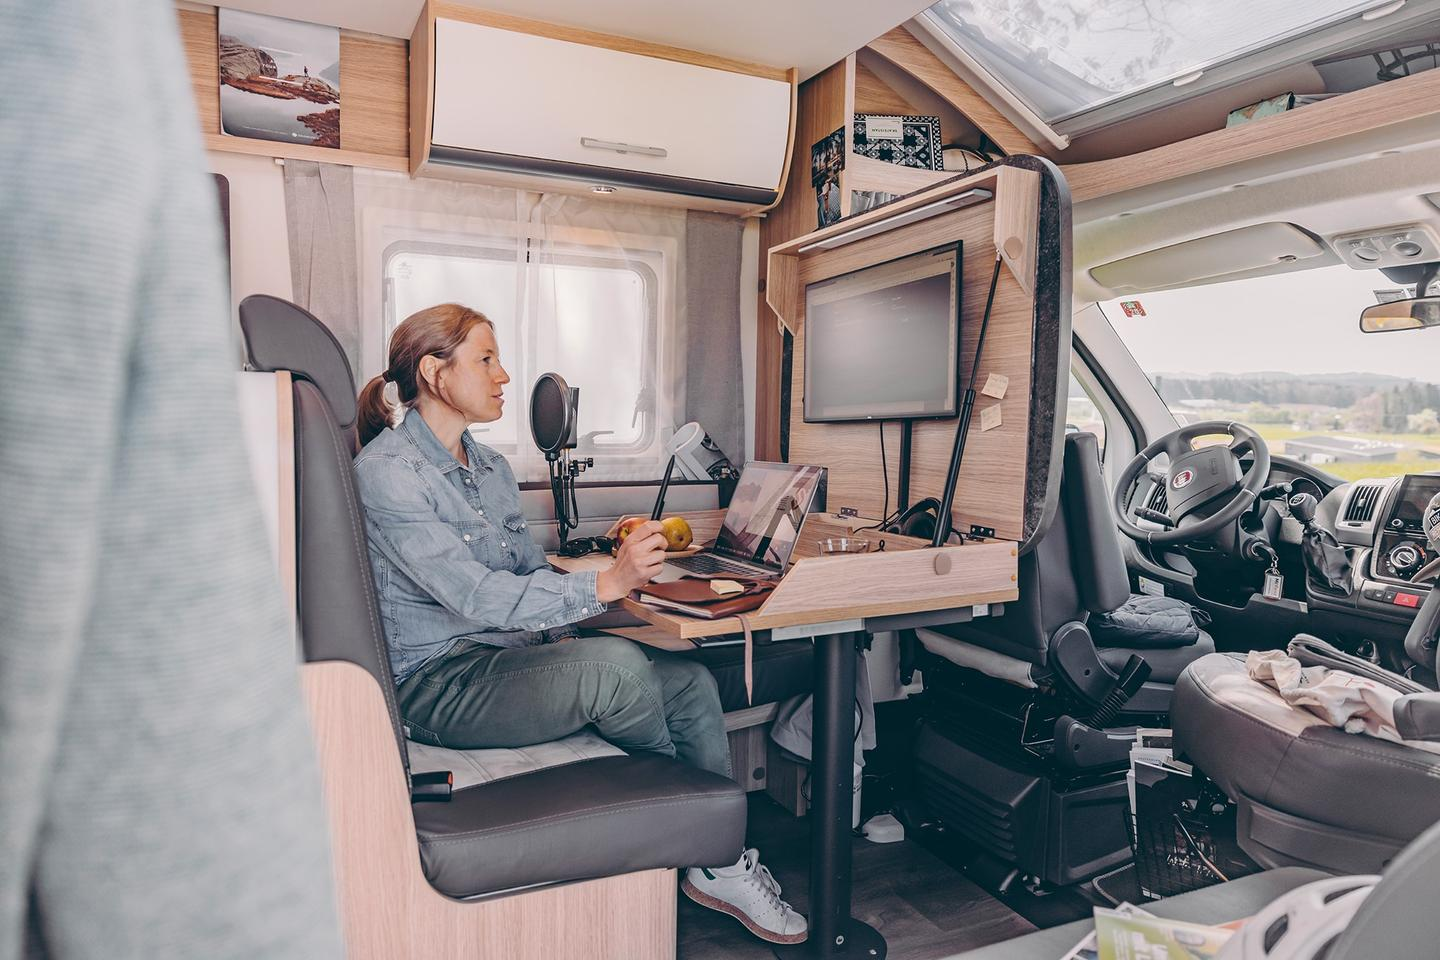 With a simple flip of the table, Sunlight's T68 motorhome becomes a Home Office on Wheels